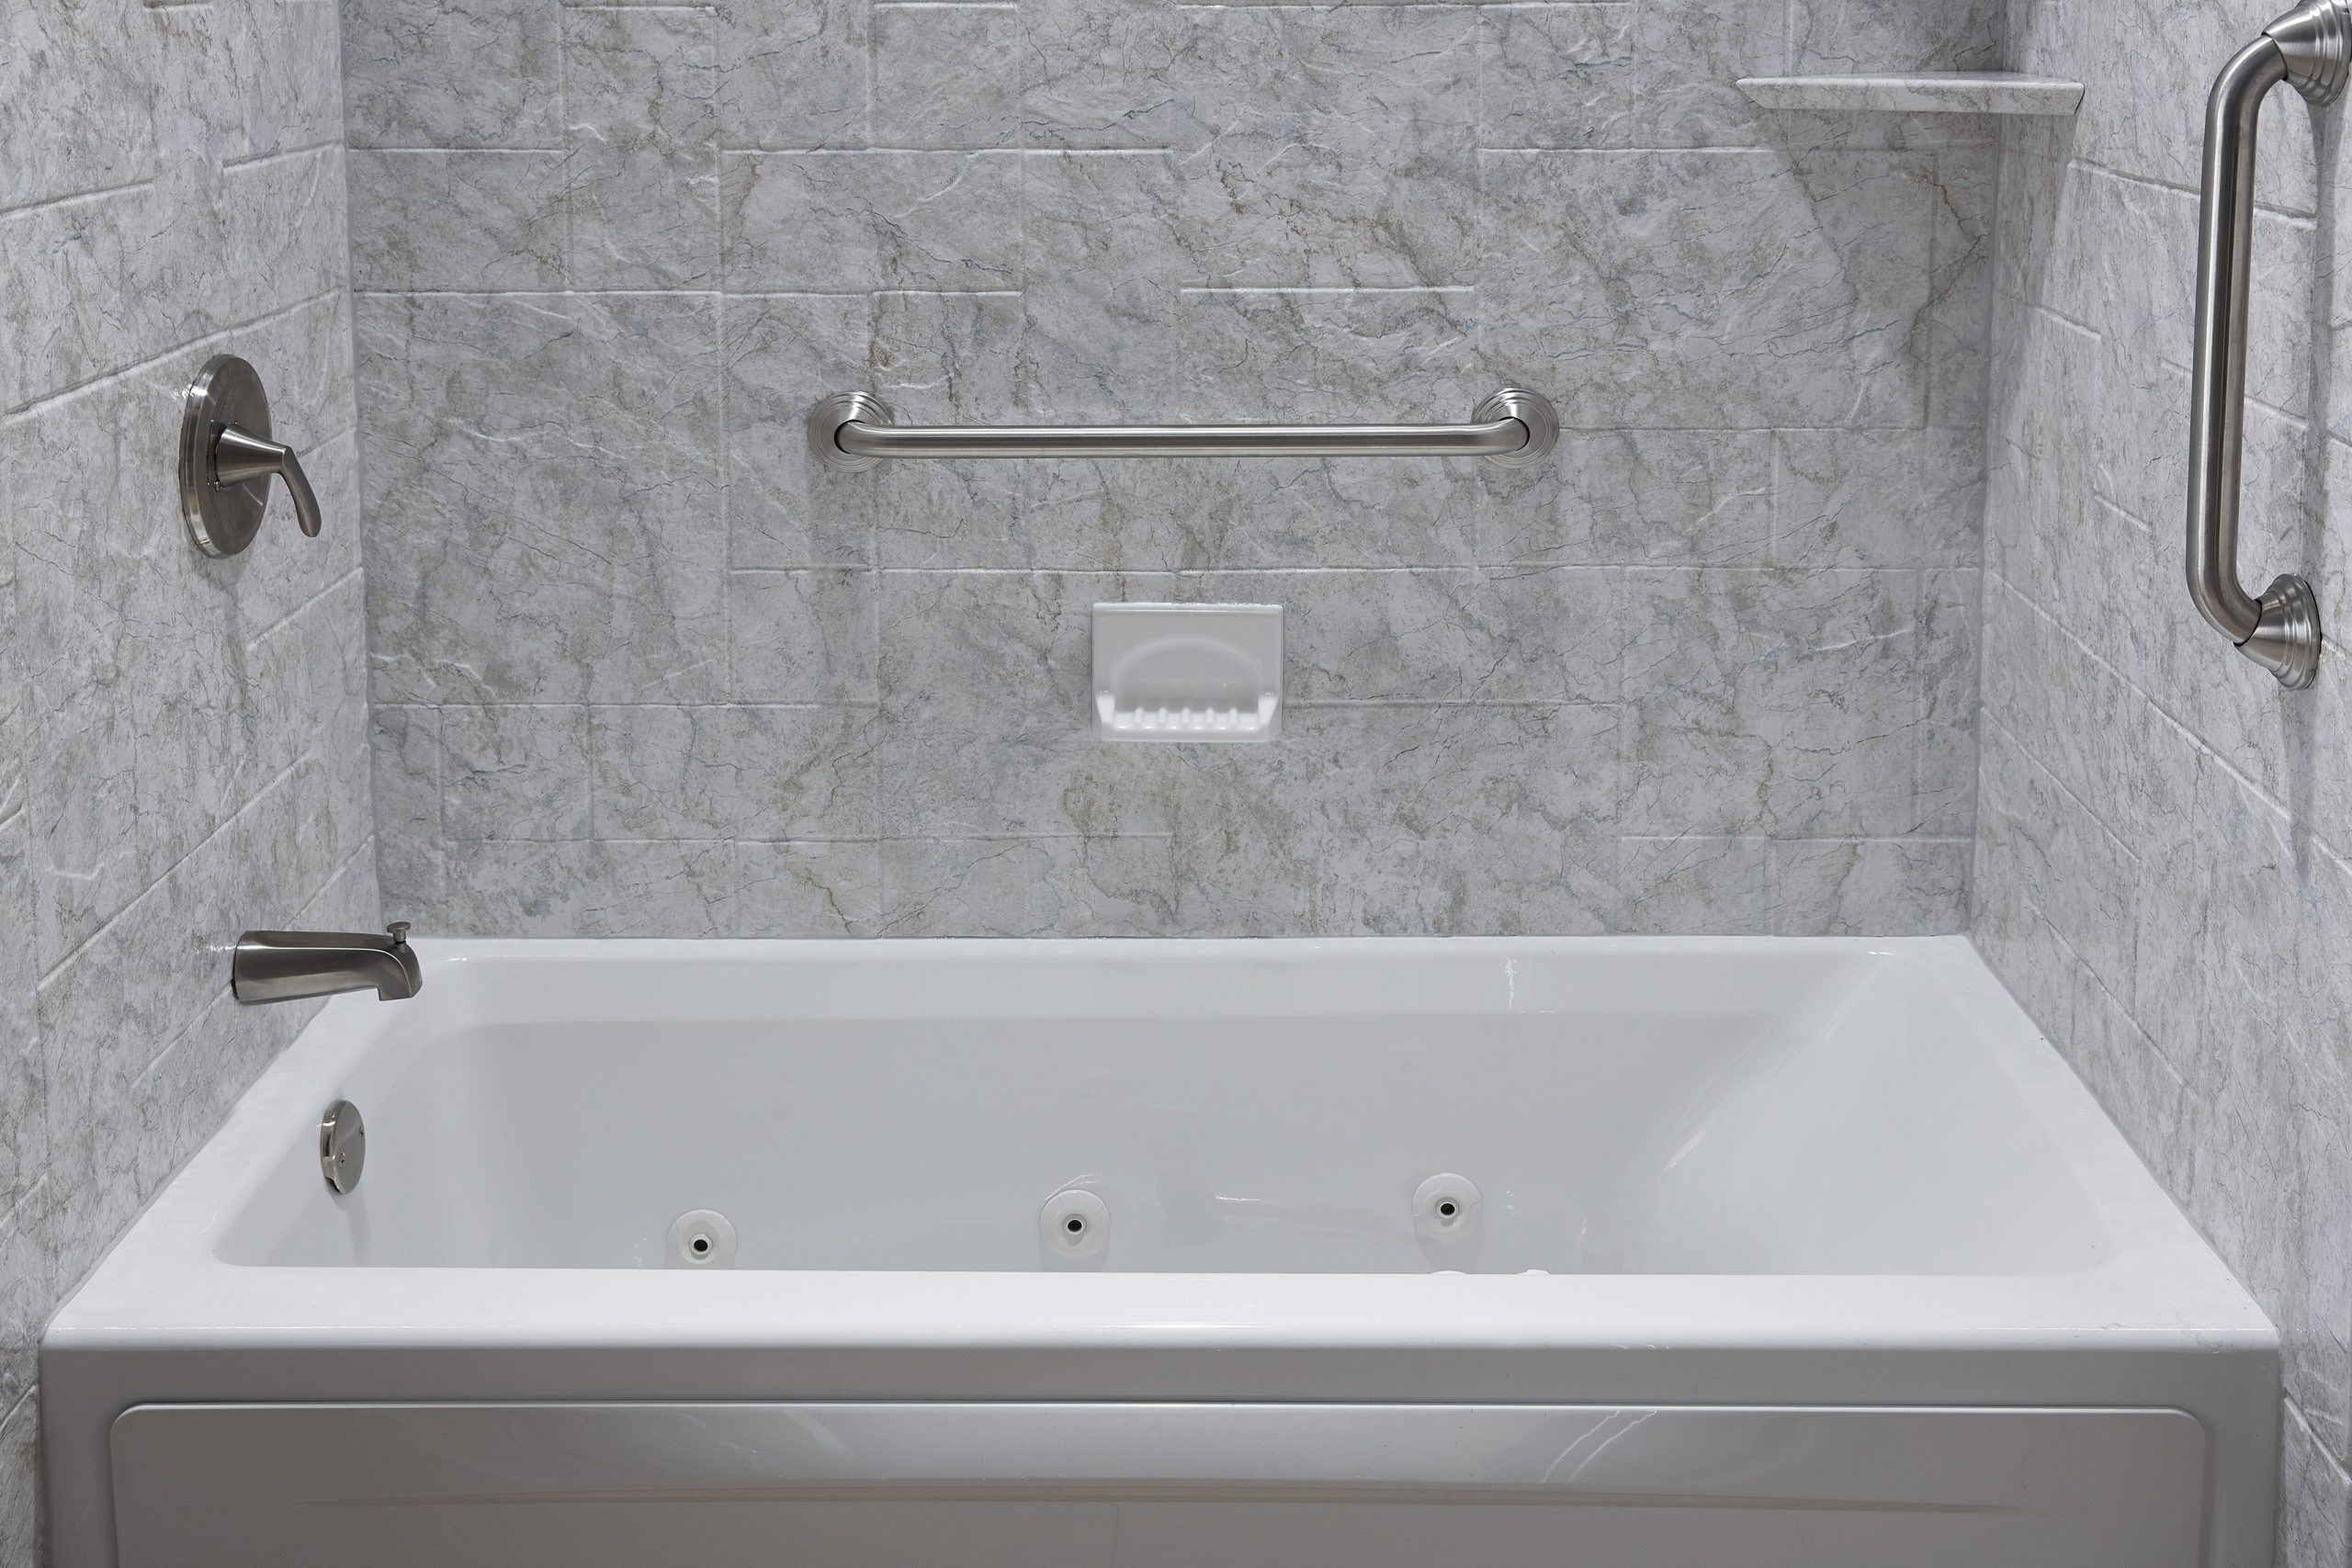 Can You Put a Tub Over an Existing Tub?